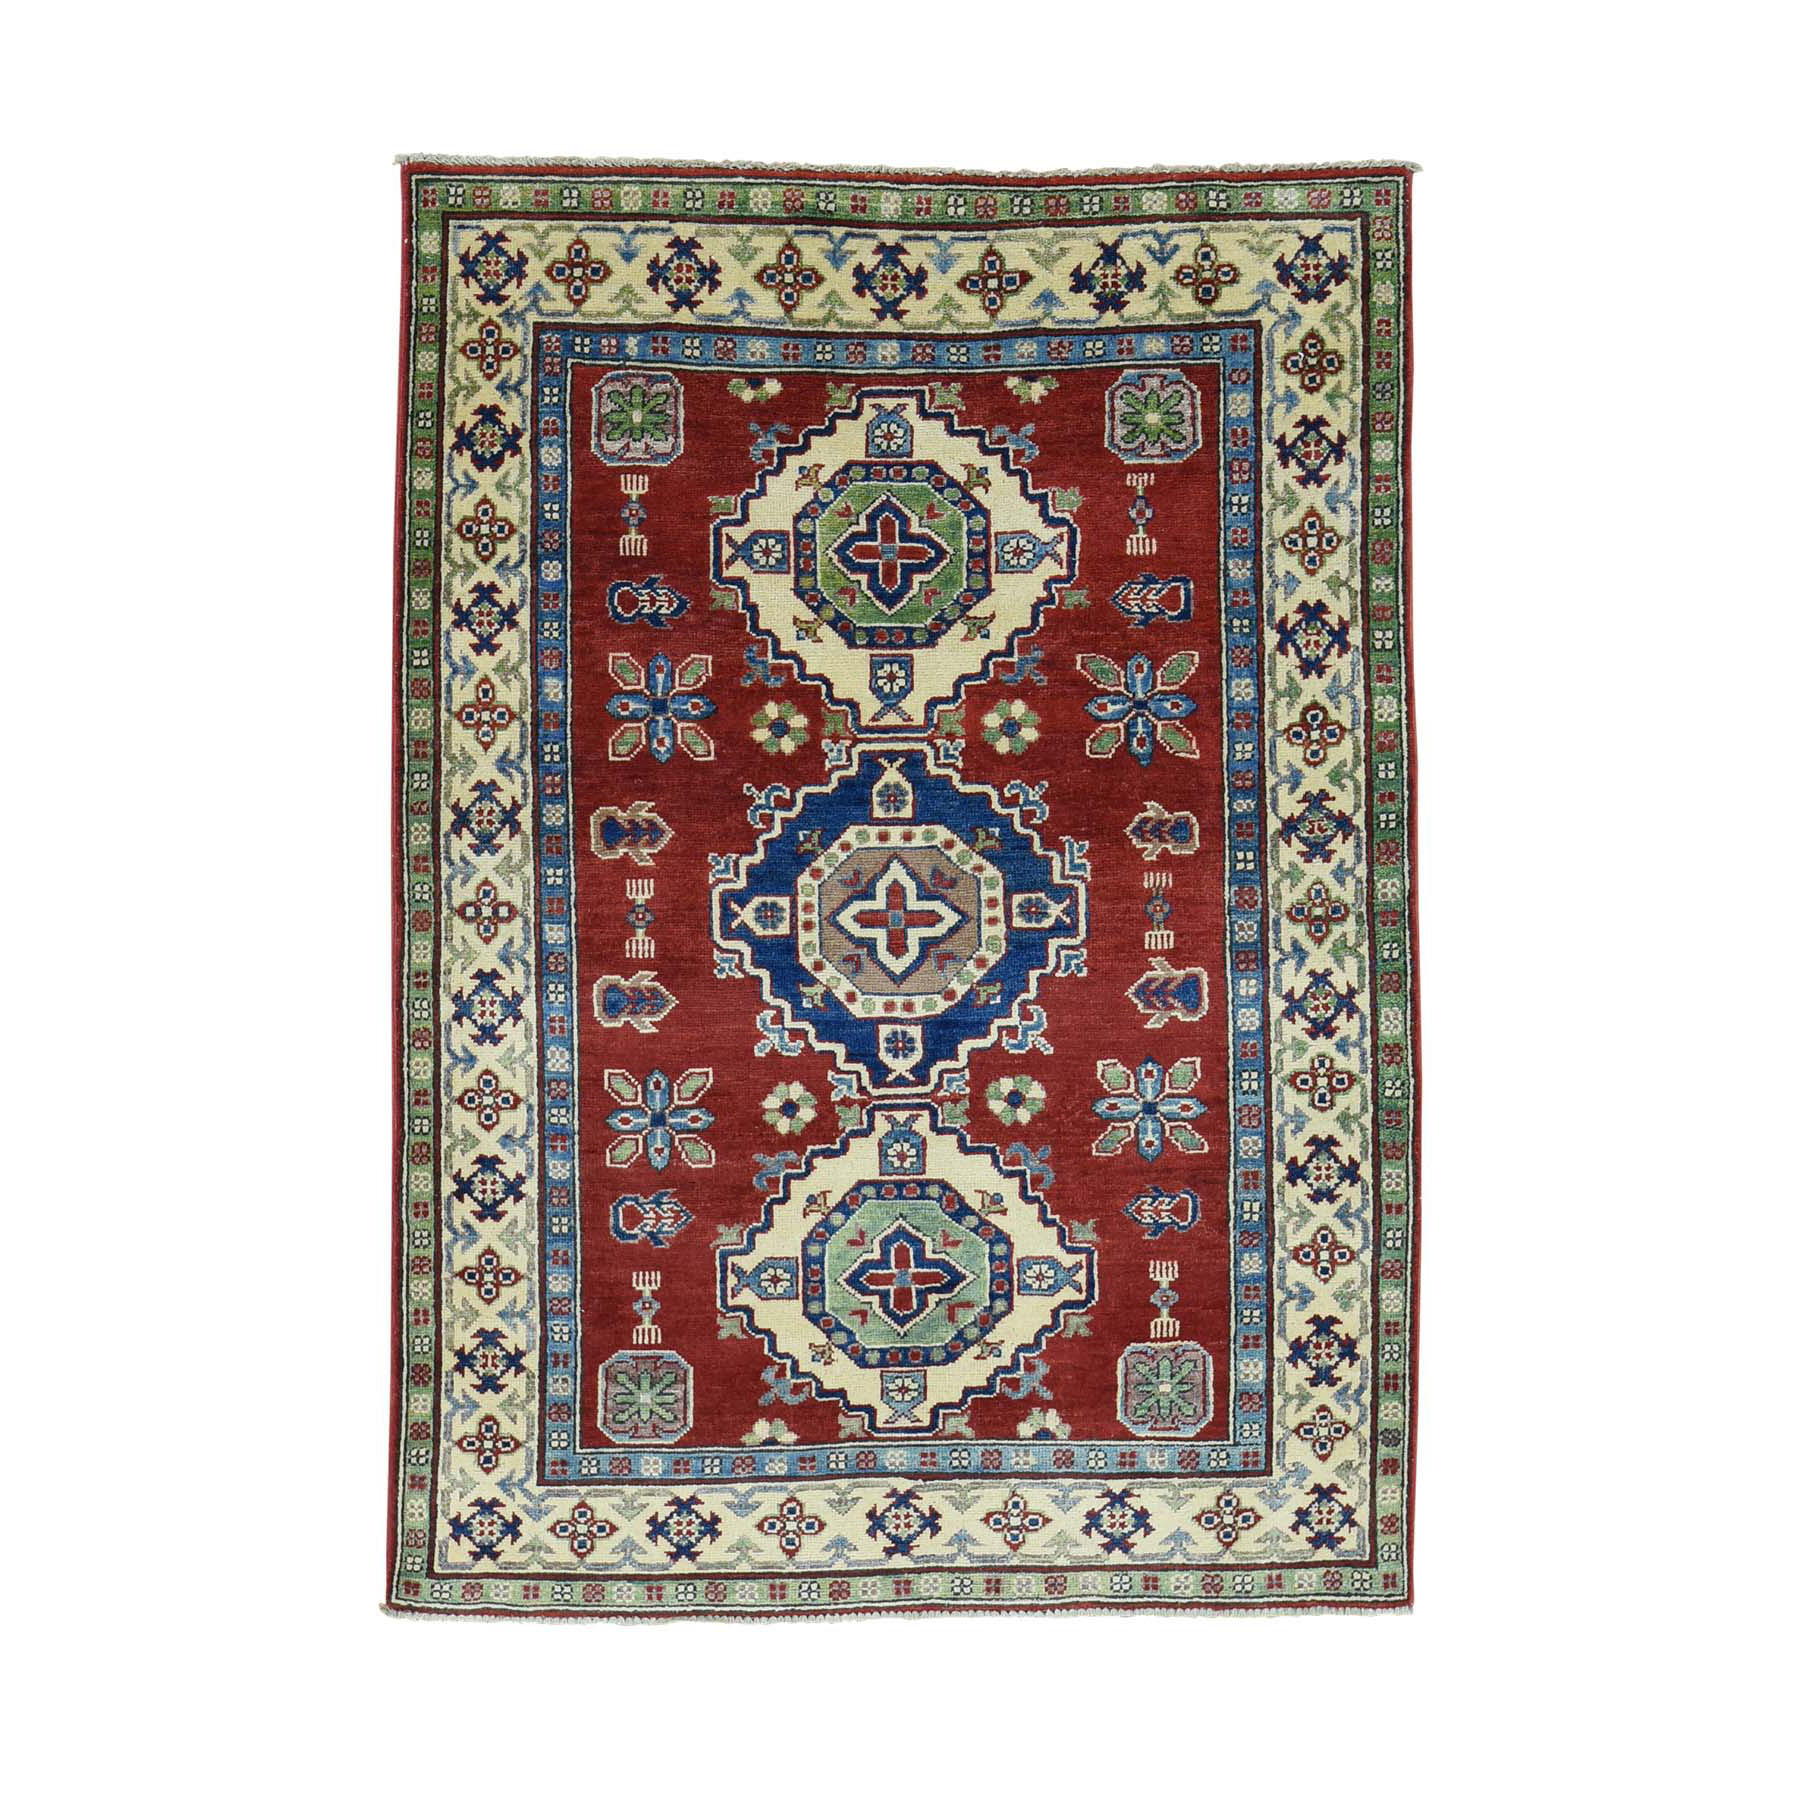 "4'1""X5'9"" Pure Wool Hand-Knotted Tribal Design Kazak Oriental Rug moacab89"